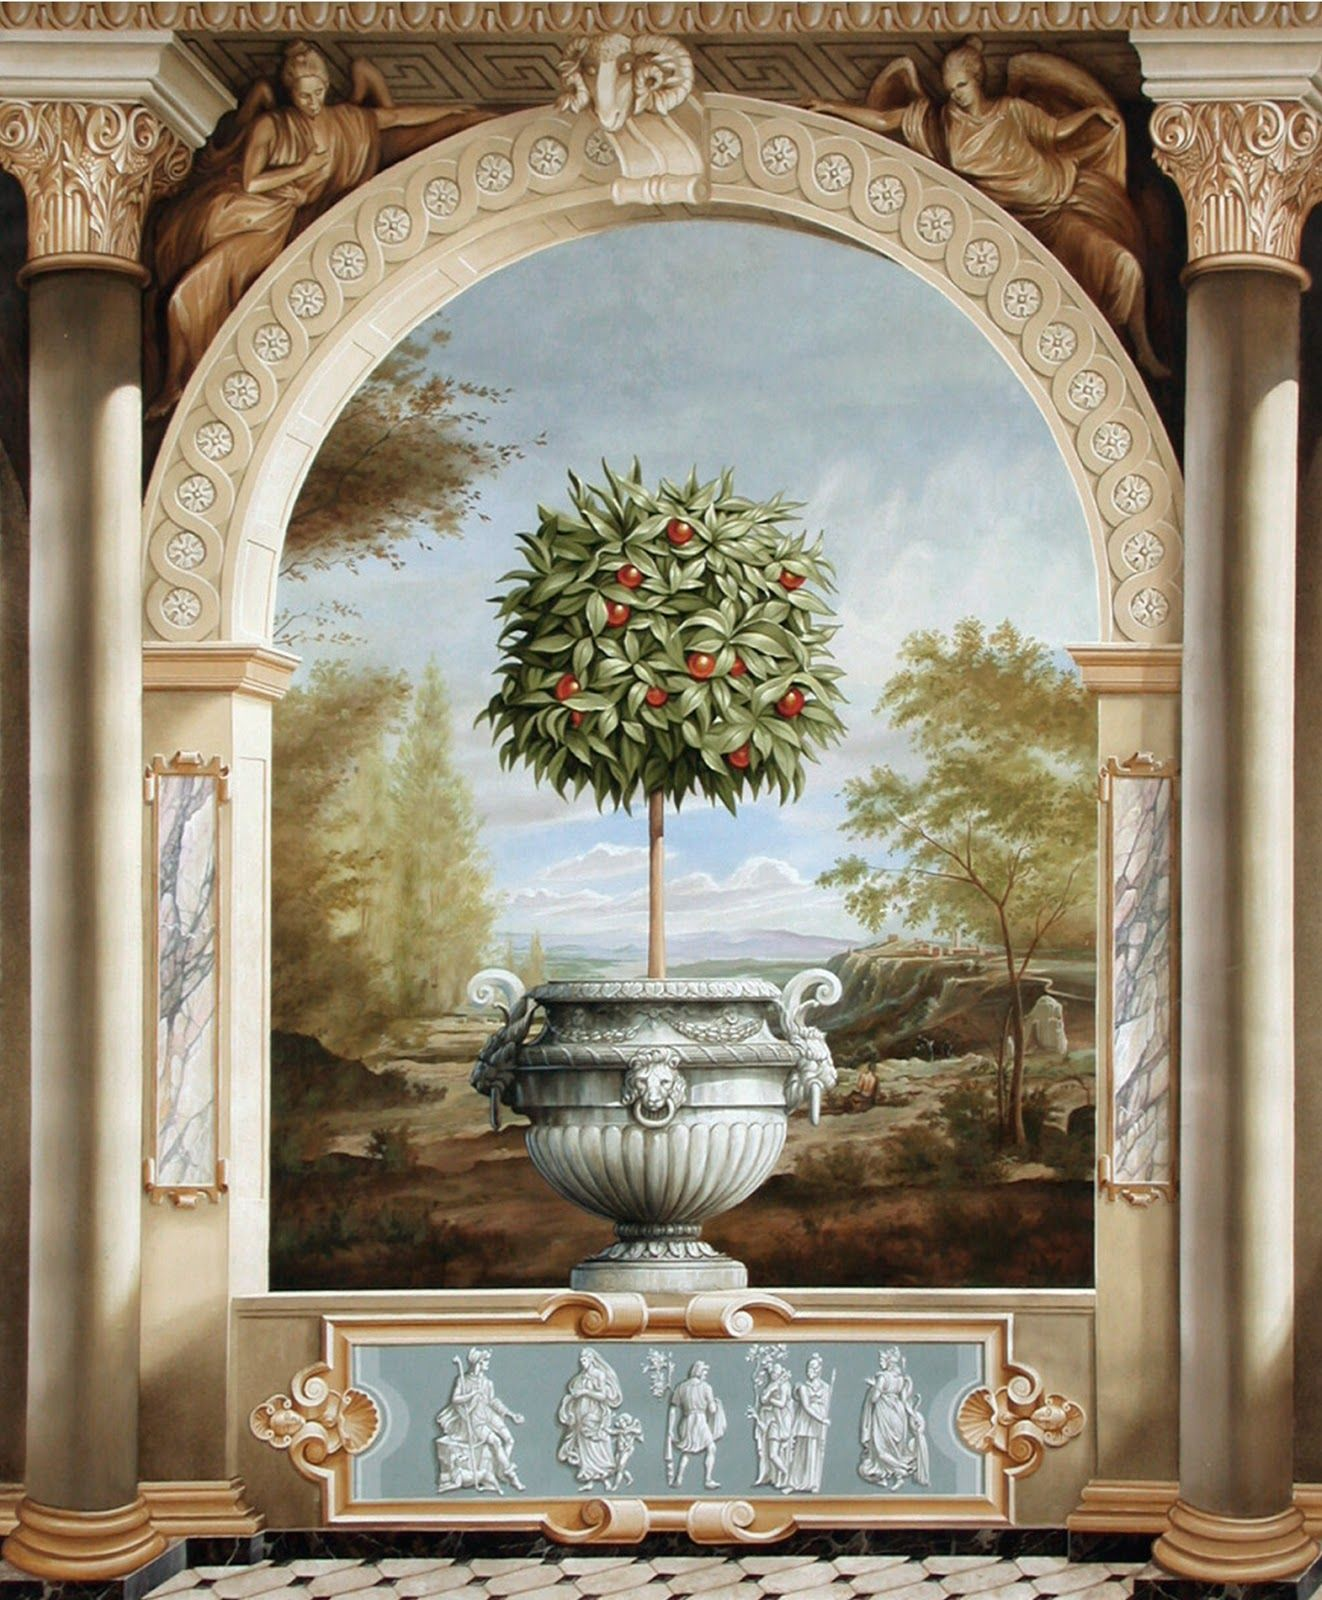 Kips Bay Show House Mural Alan Carroll 2003 This Is Whats Known As Trompe LOeil Deceive The Eye An Art Technique That Uses Realistic Imagery To